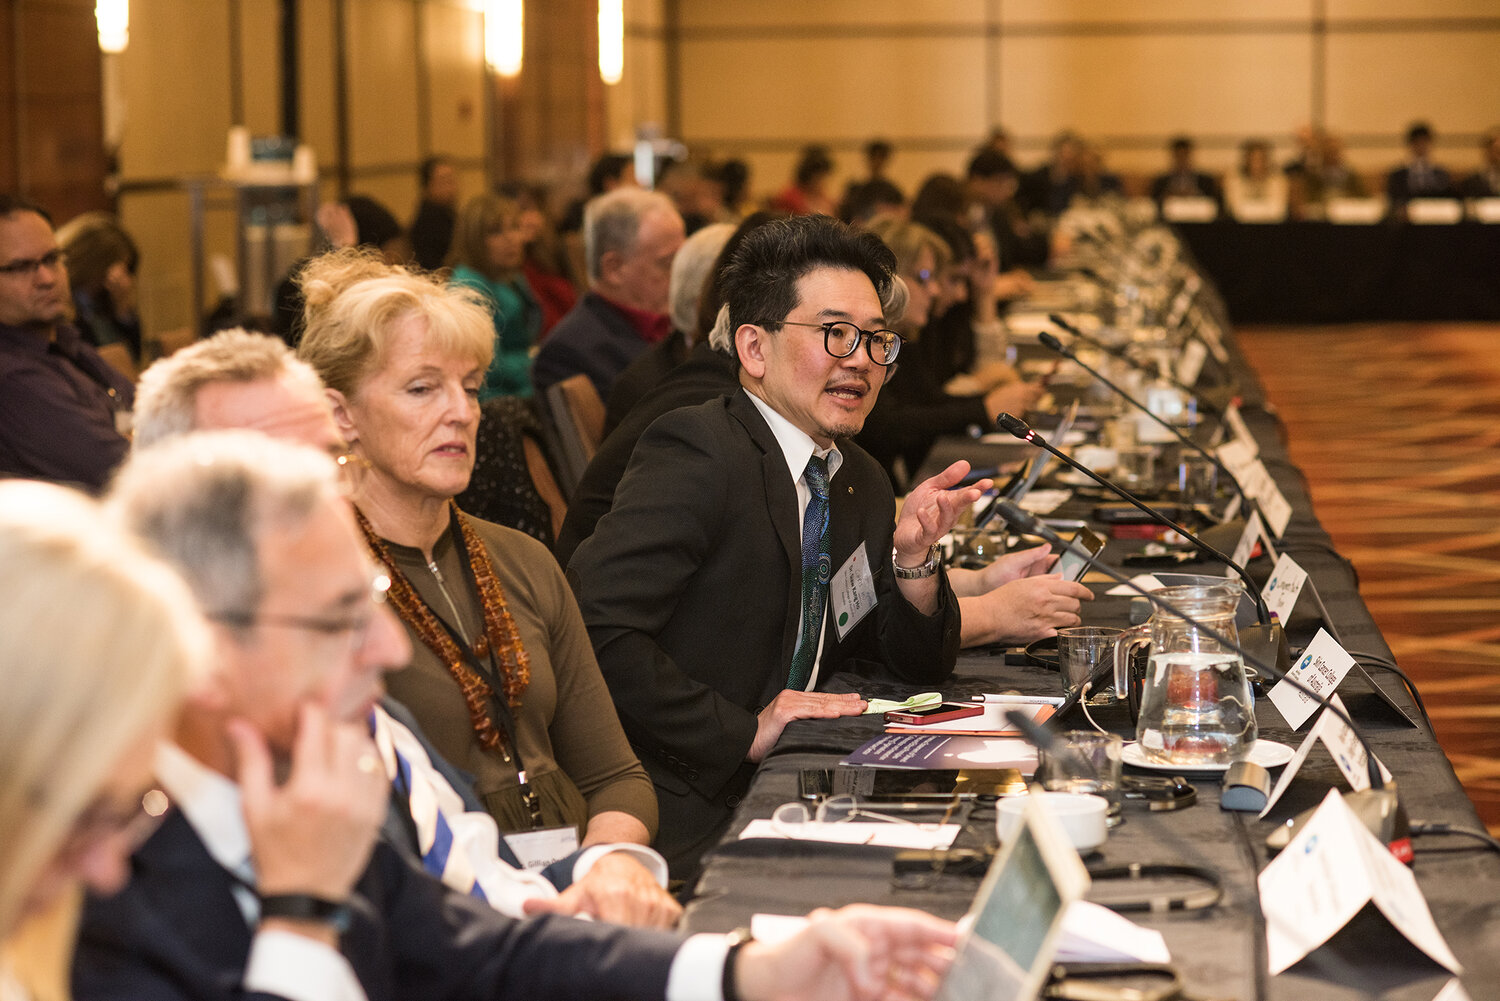 Siaw Kang Ho, representing the Skin Cancer College of Australia, during question at the Plenary Session at the 2019 APEC Forum